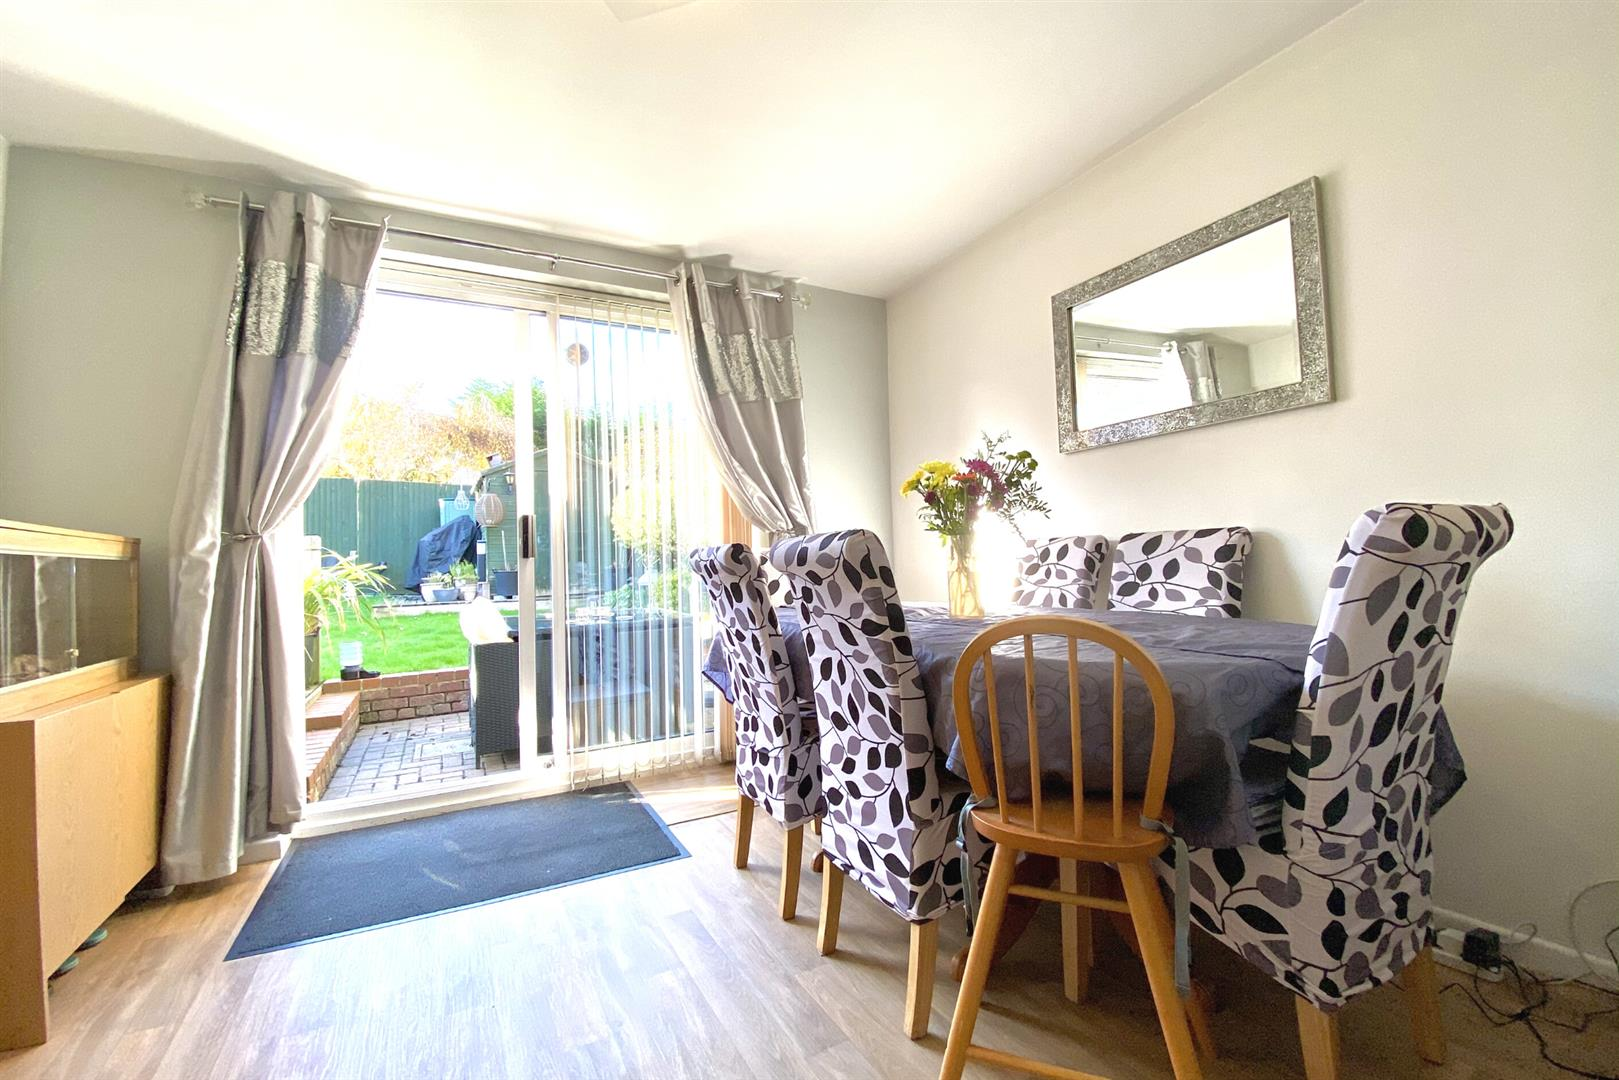 3 bed end of terrace for sale in Lower Earley  - Property Image 7